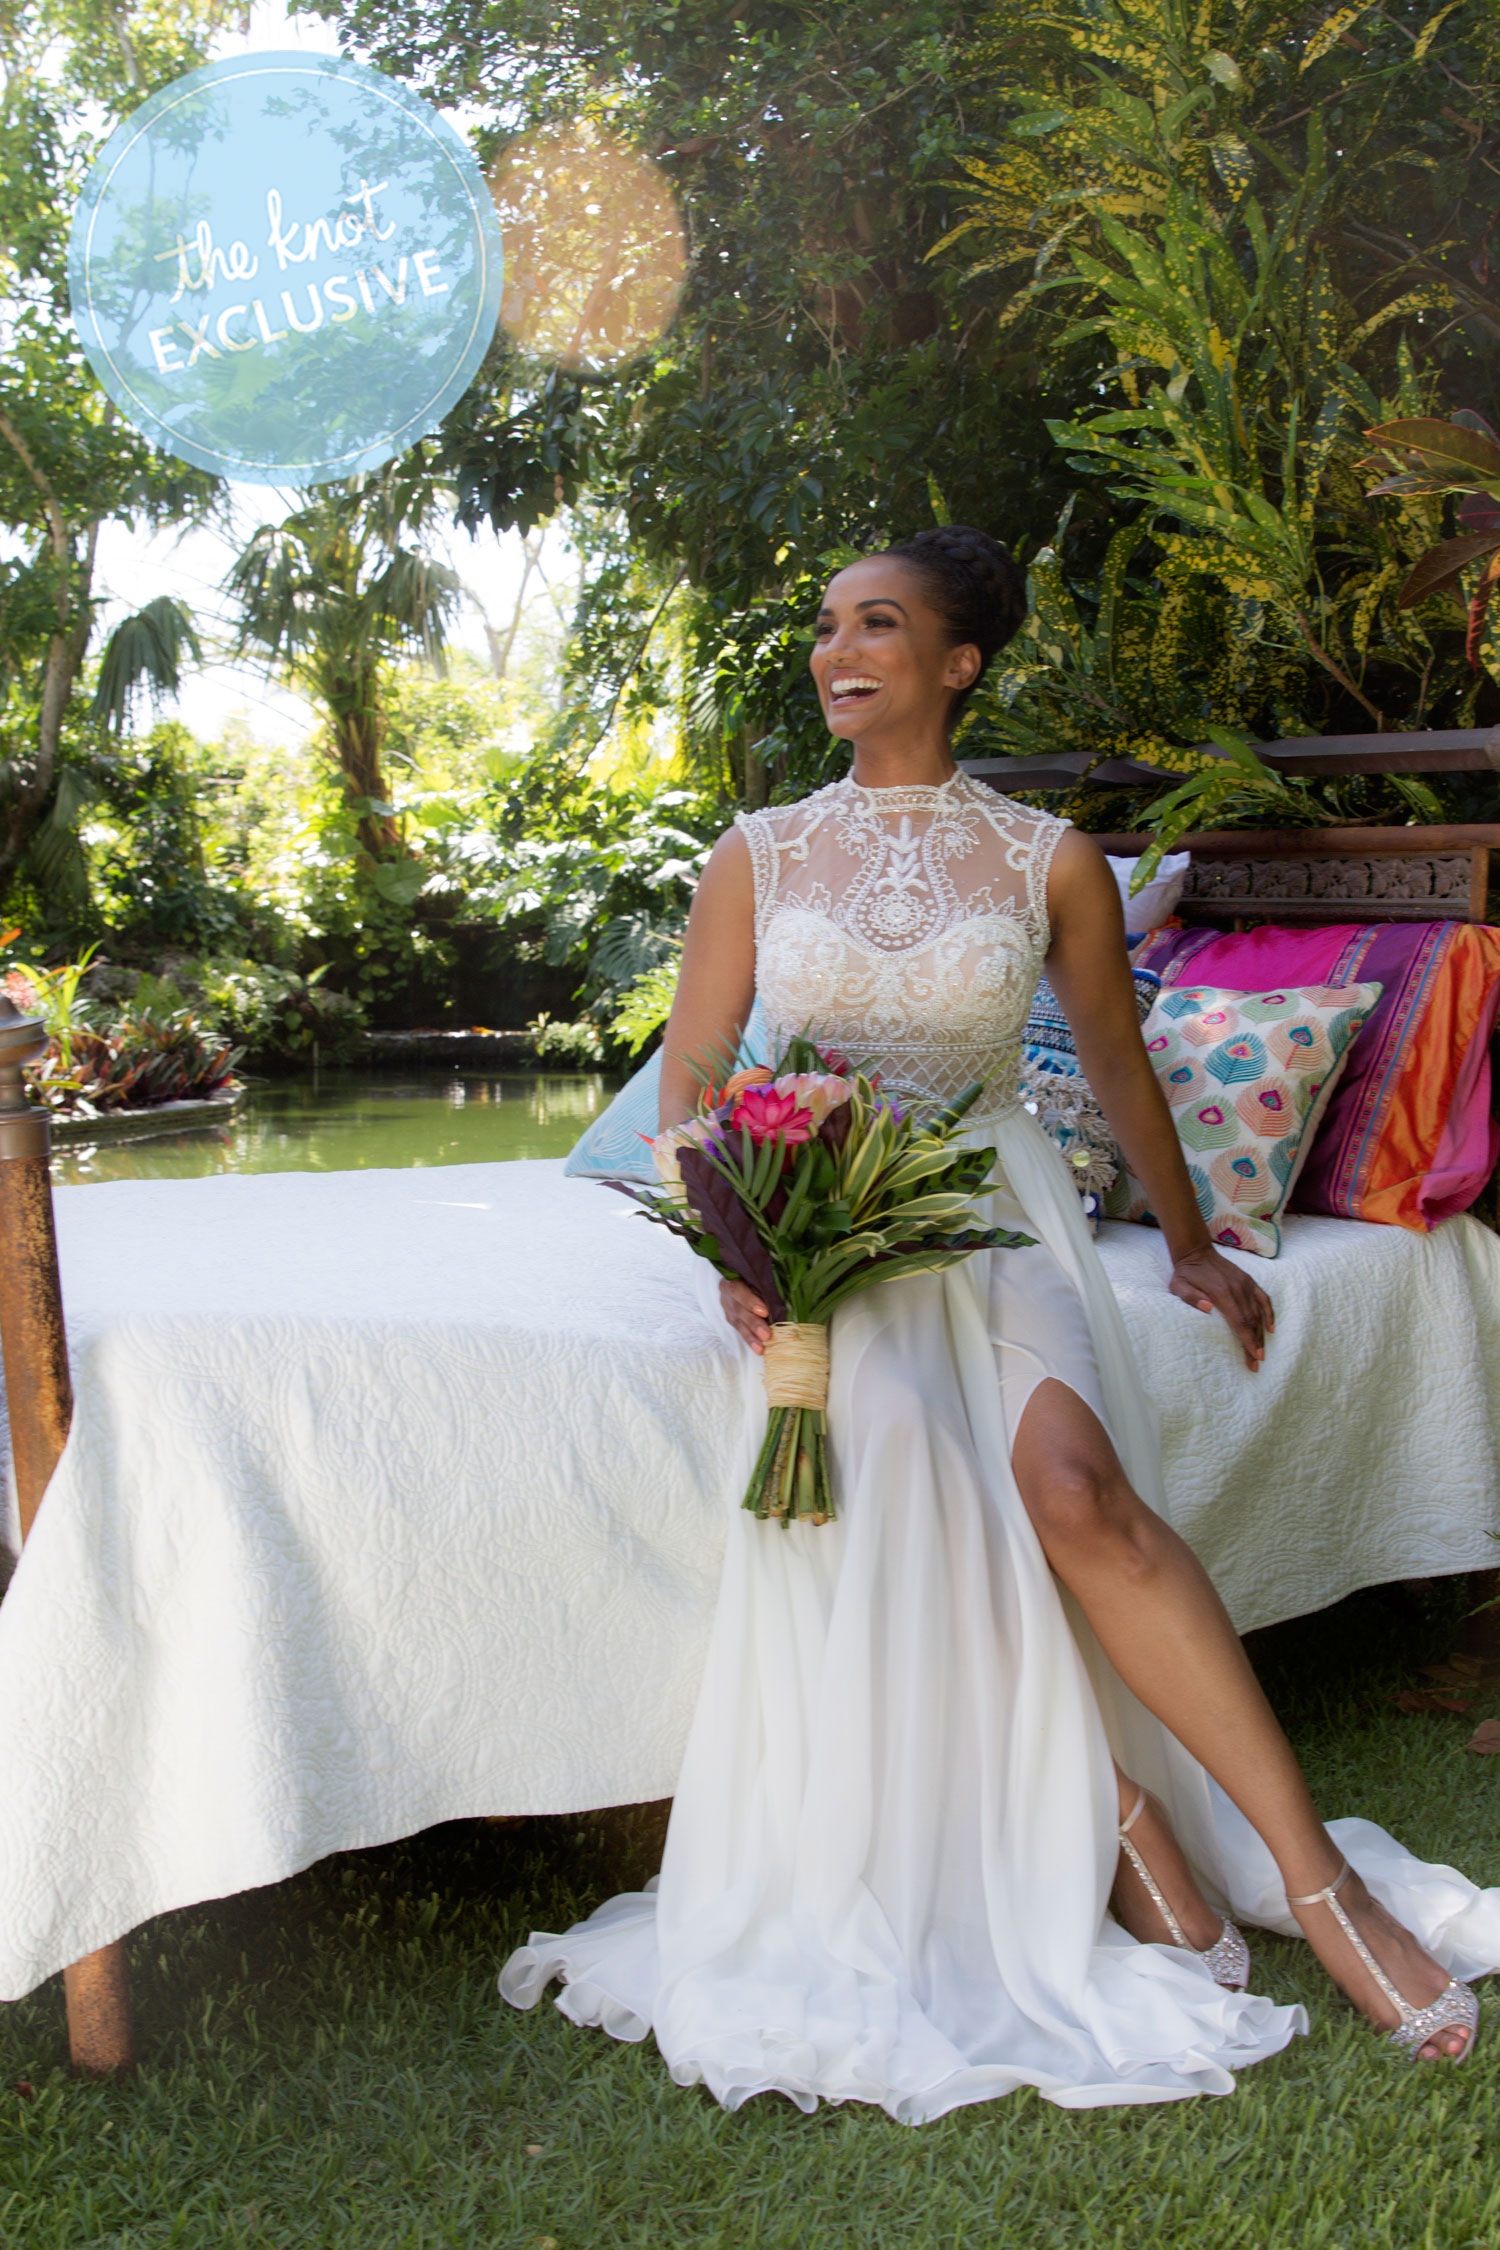 Exclusive: Once Upon a Time\'s Mekia Cox Marries in Caribbean Wedding